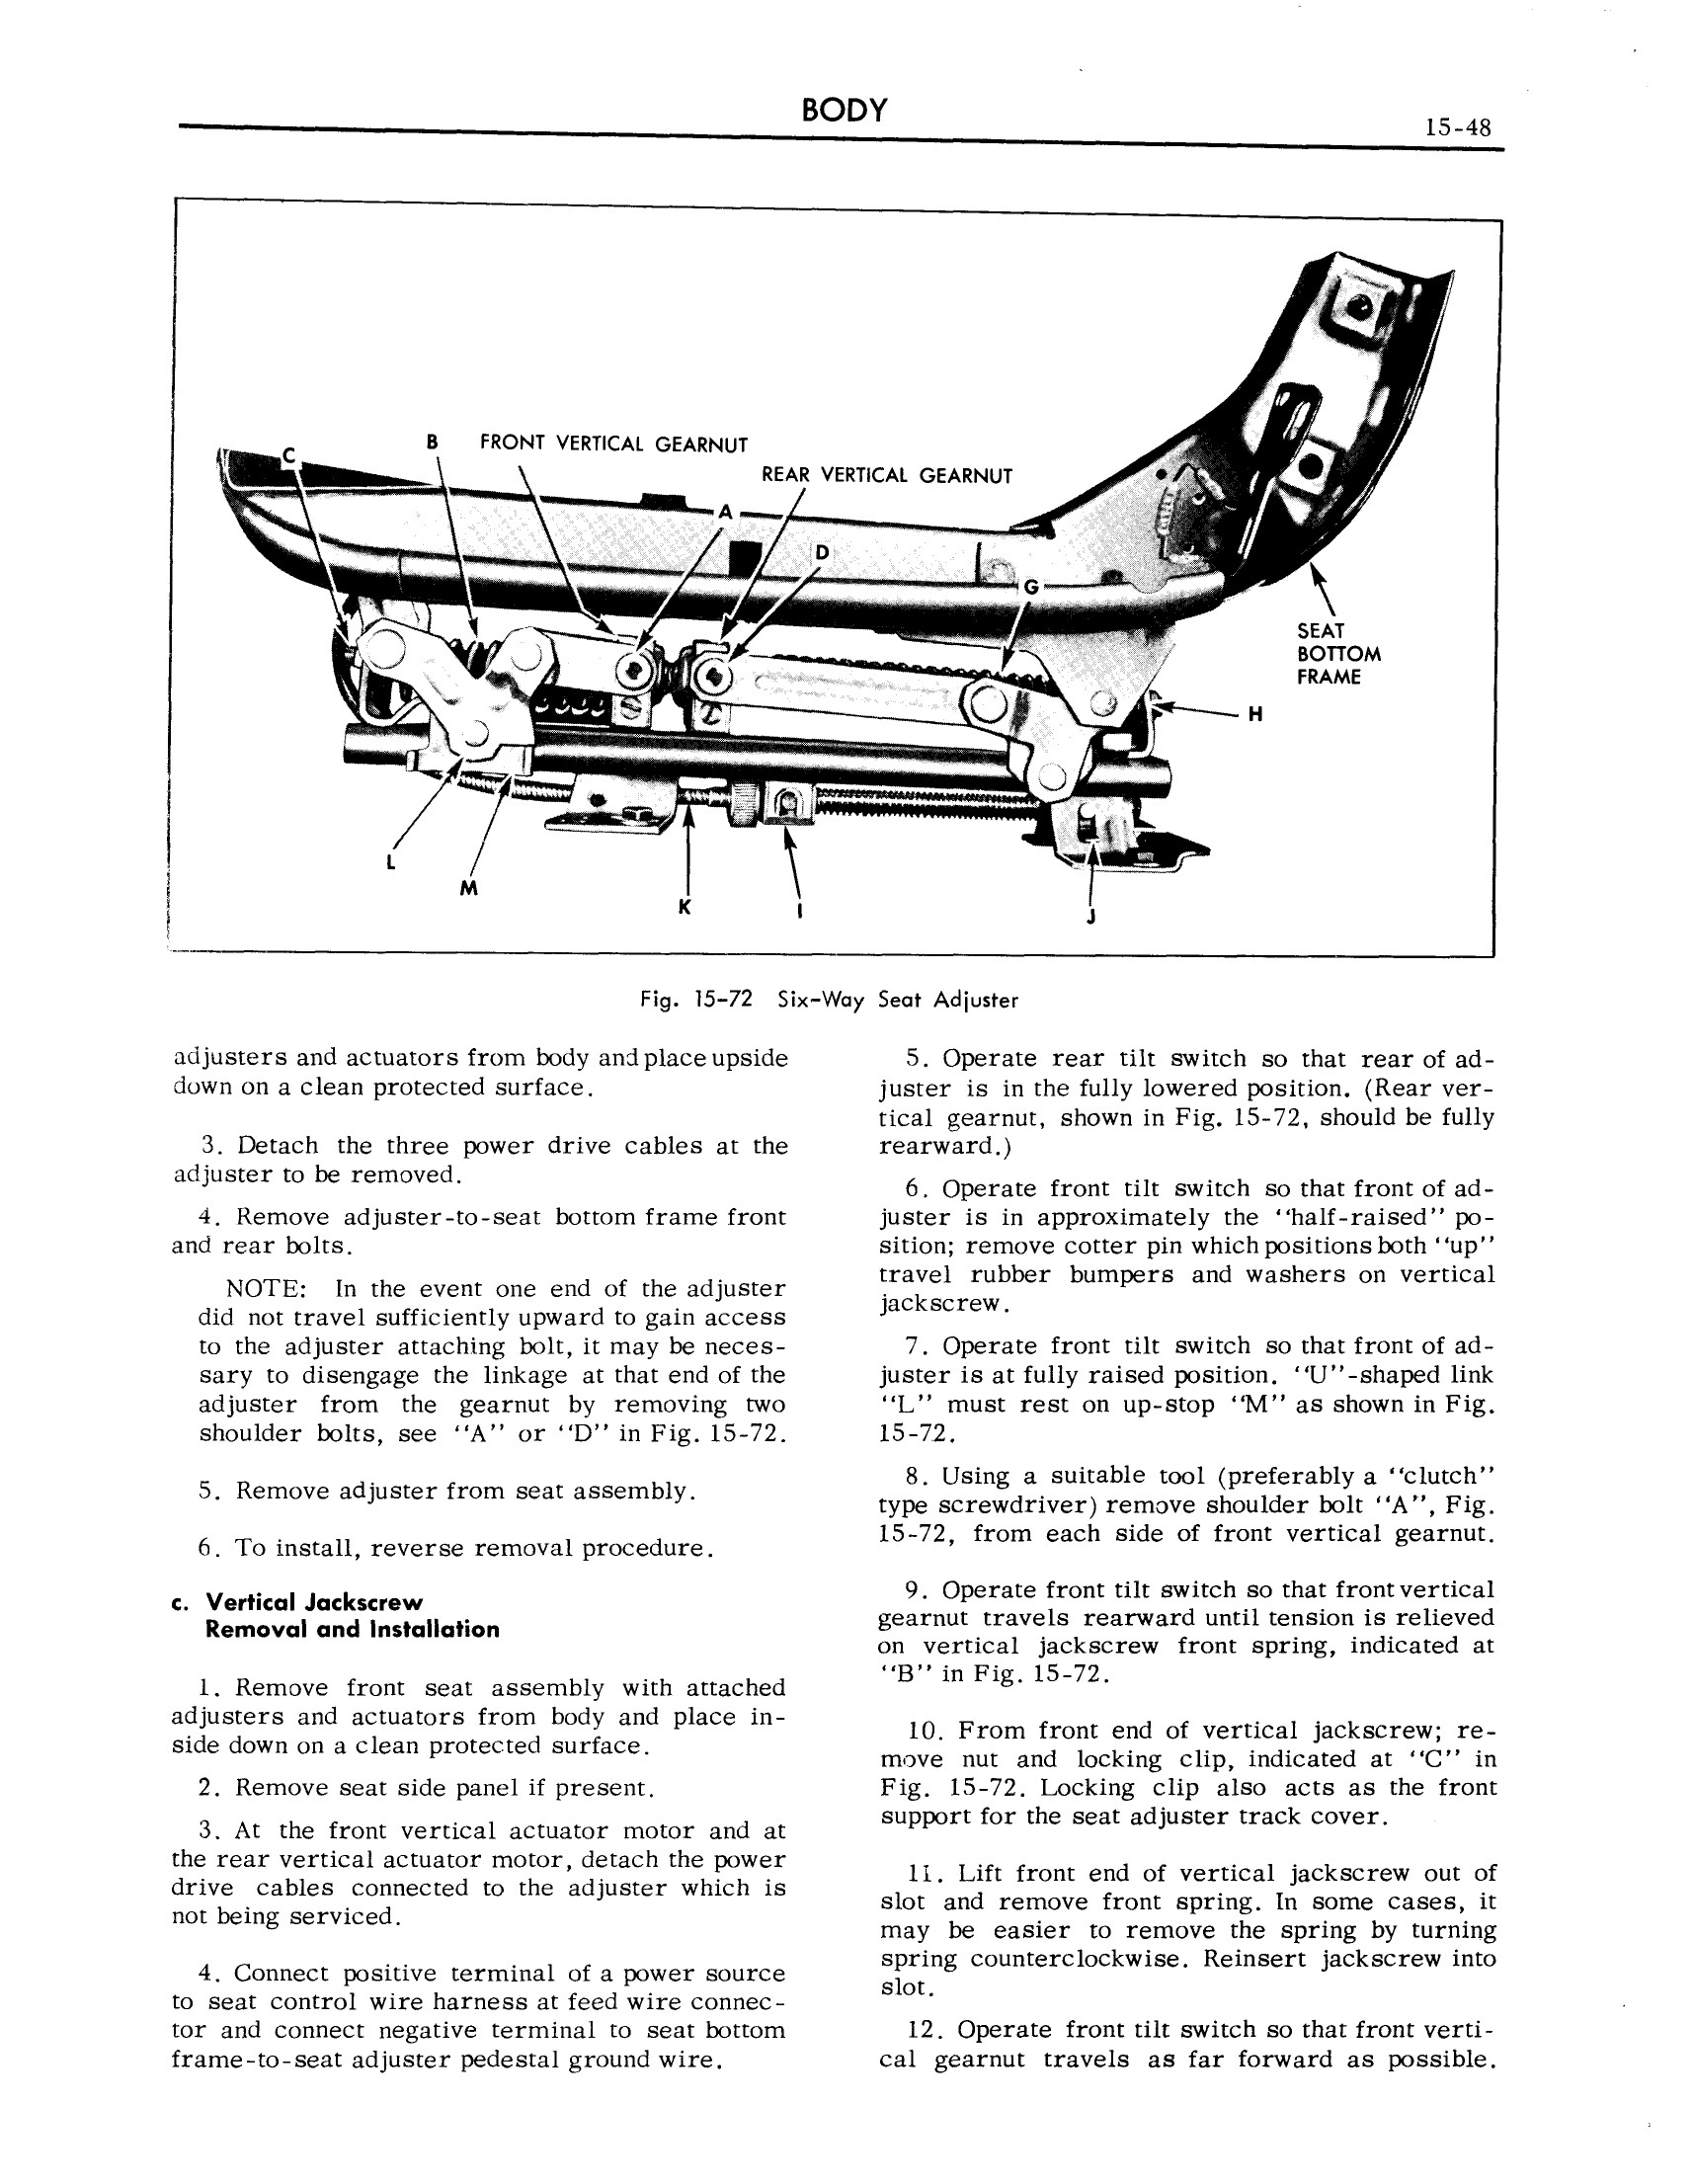 1959 Cadillac Shop Manual- Body Page 48 of 99